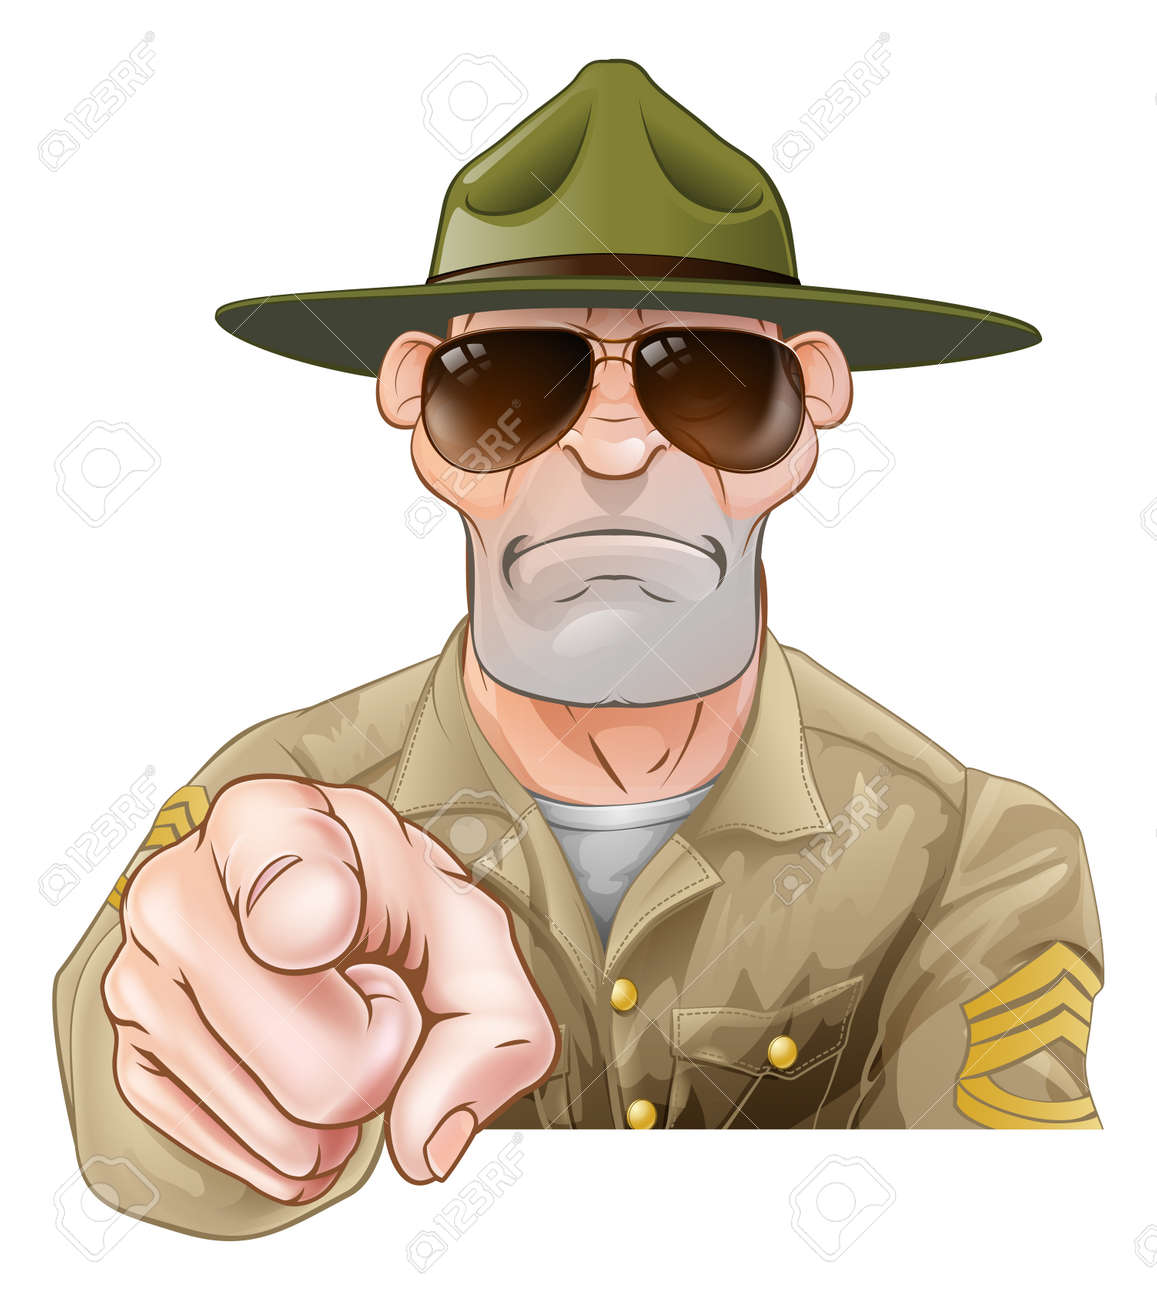 An angry looking cartoon army boot camp drill sergeant pointing - 56272718